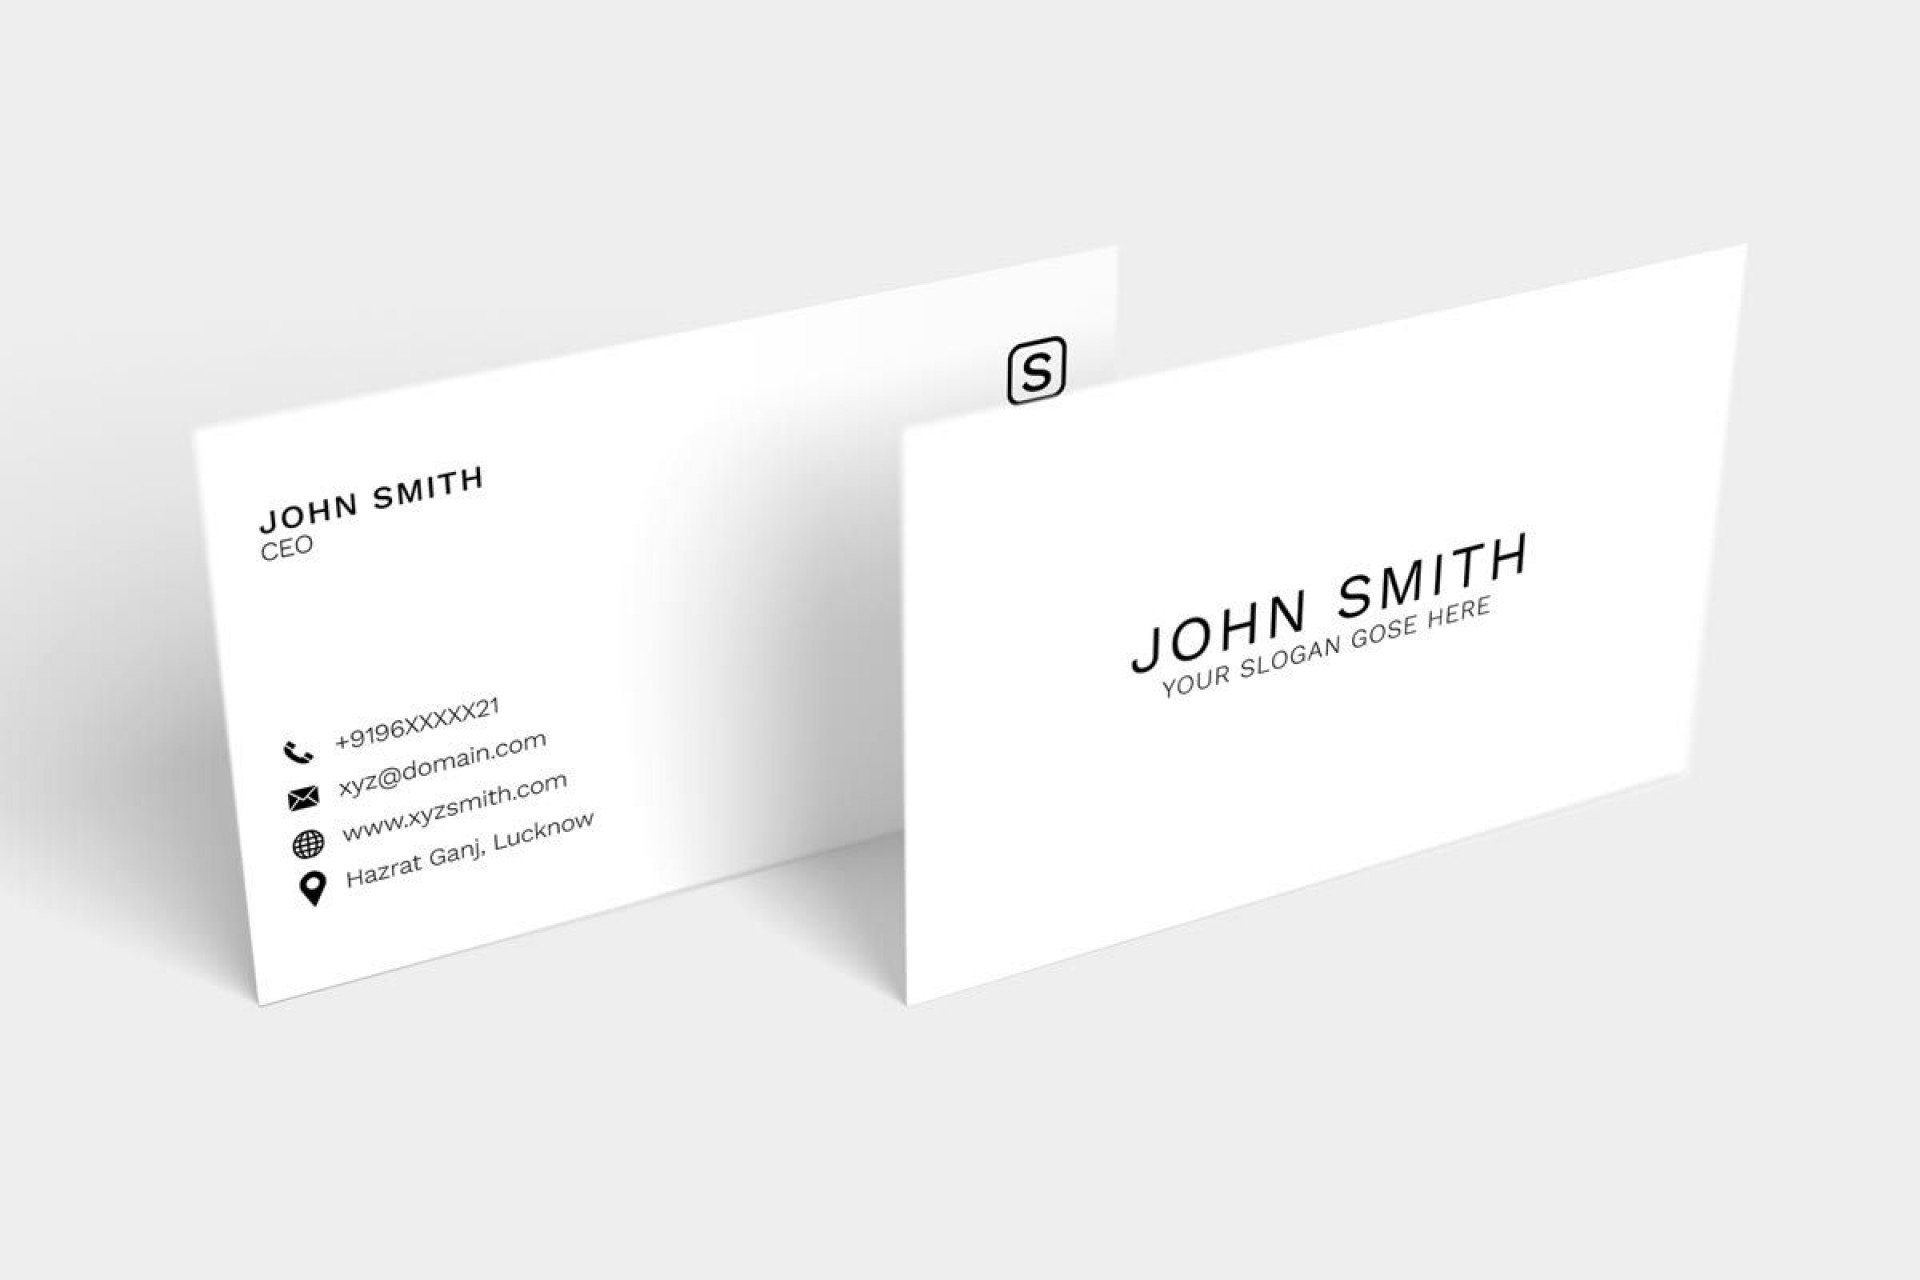 010 Awesome Simple Visiting Card Design Psd High Definition  Minimalist Busines Template Free File Download In Photoshop1920